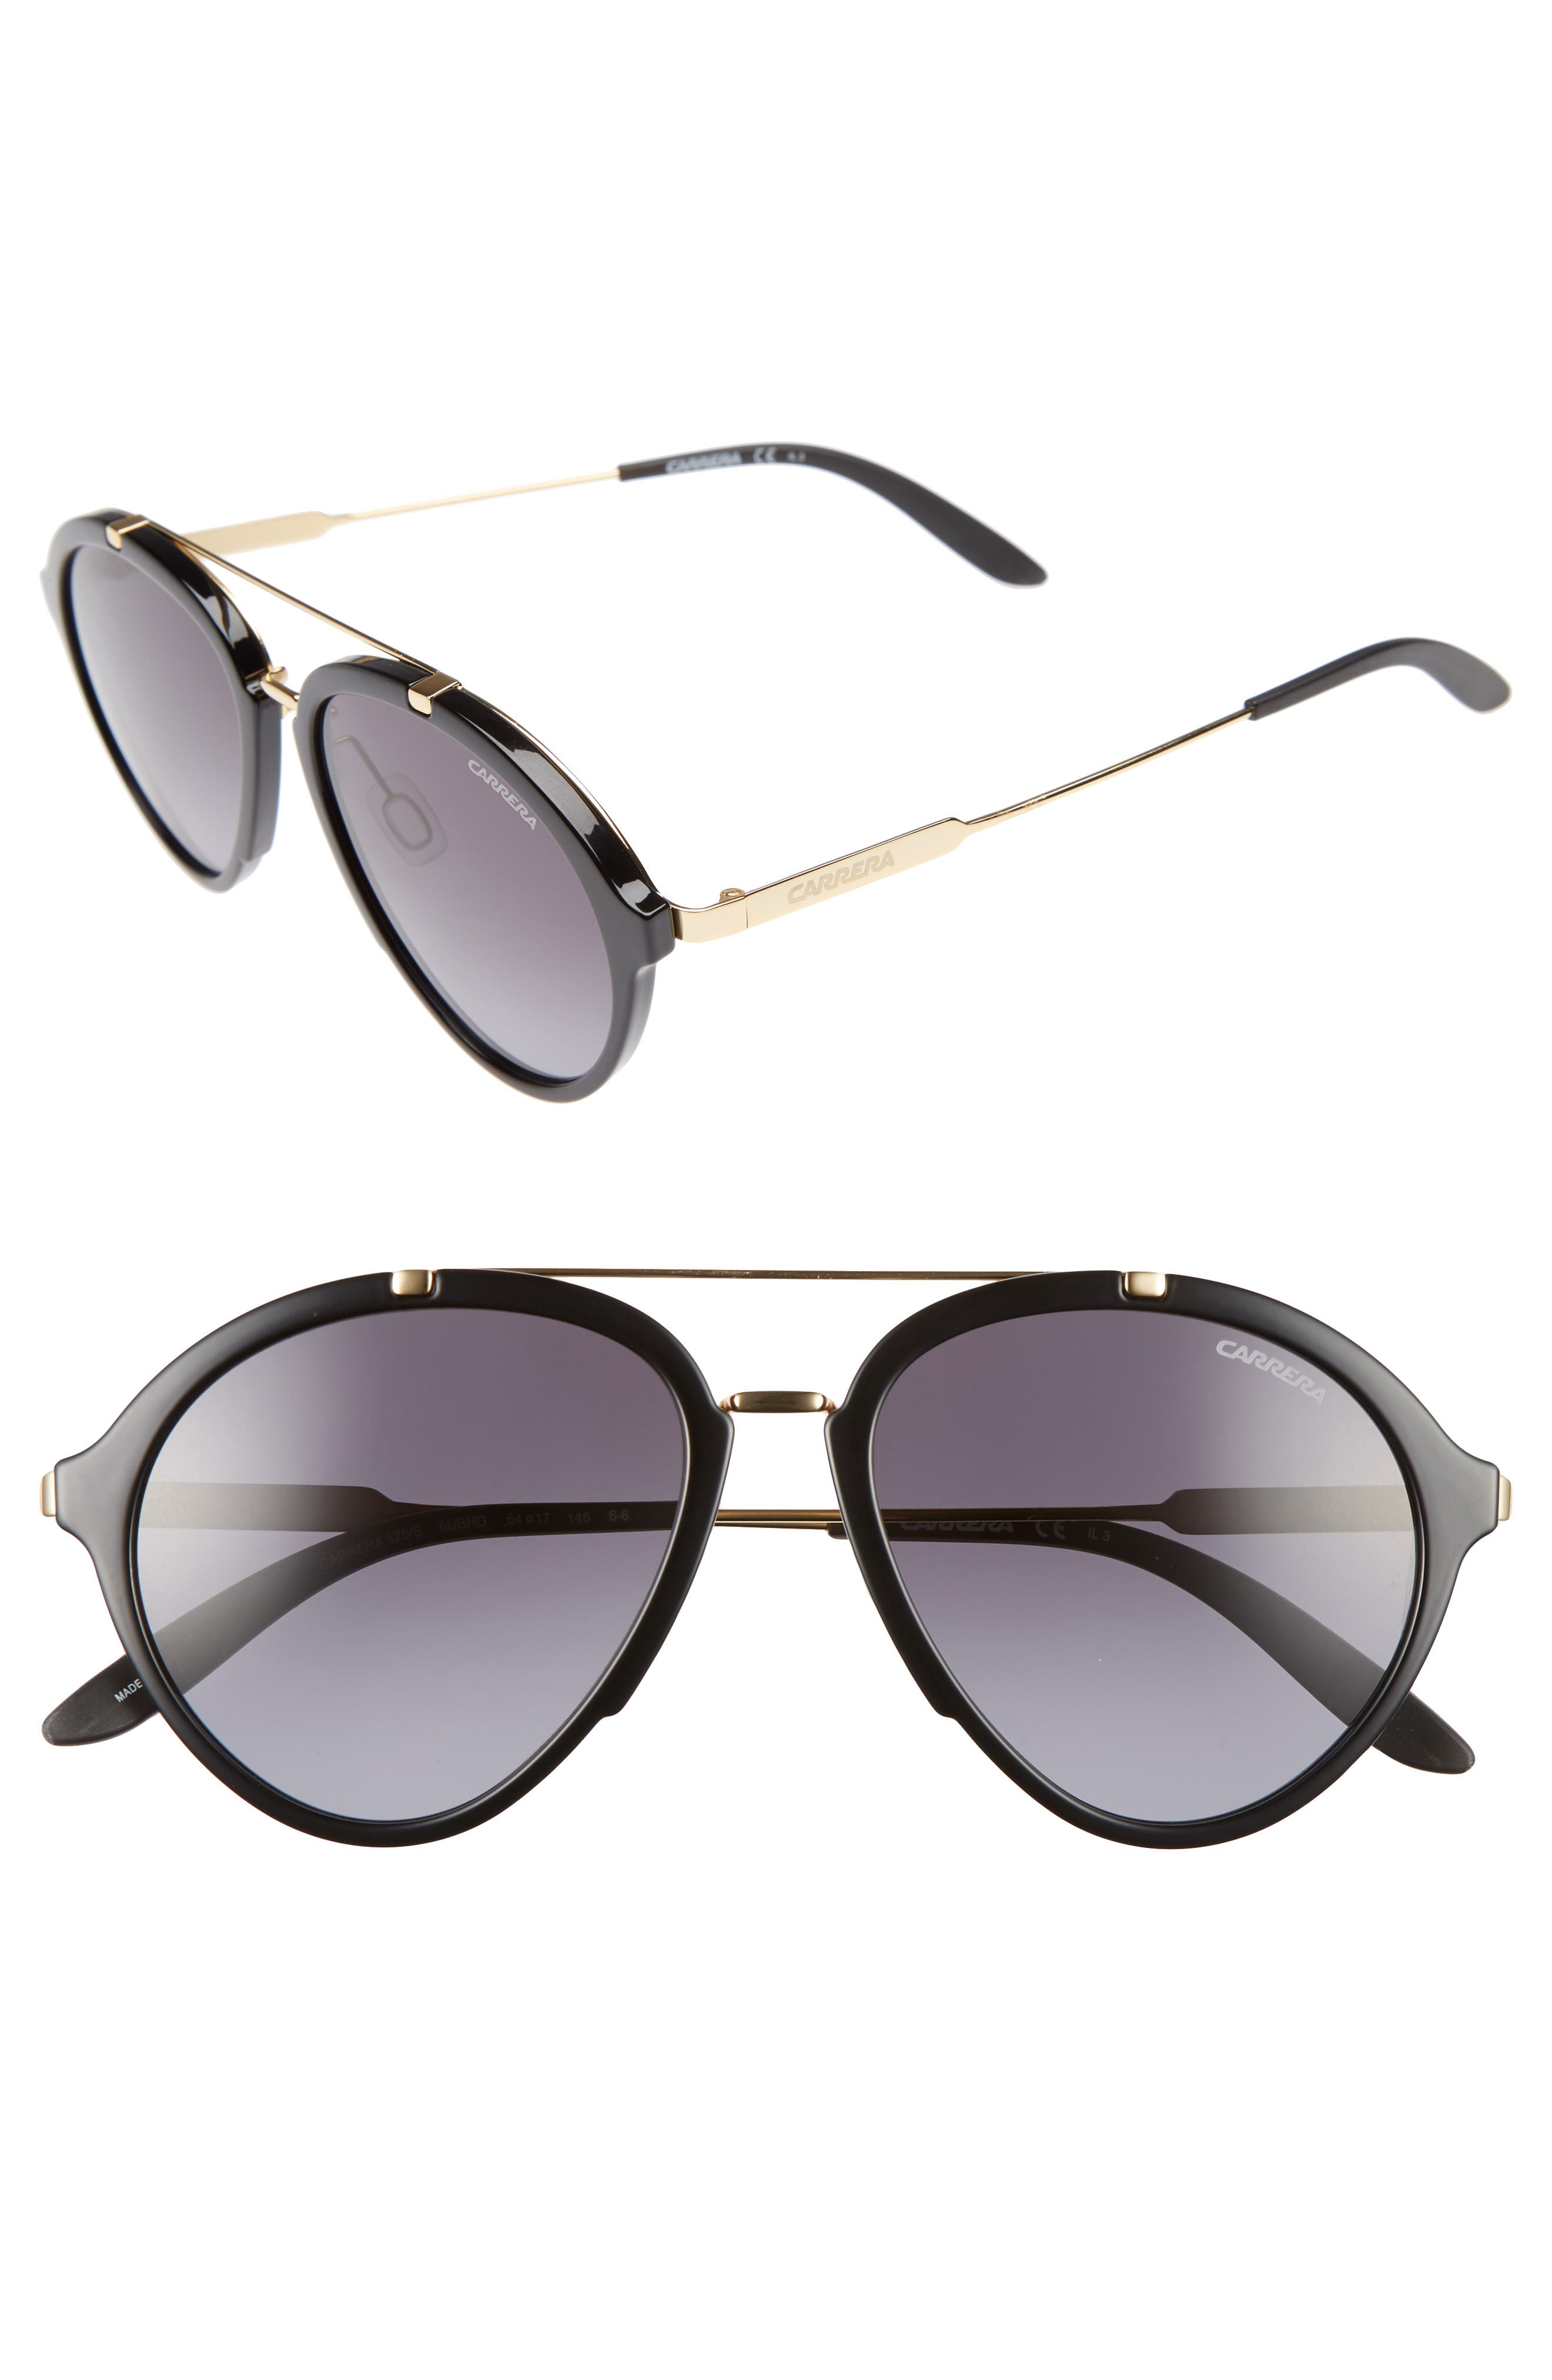 Main Image - Carrera Eyewear 54mm Gradient Aviator Sunglasses